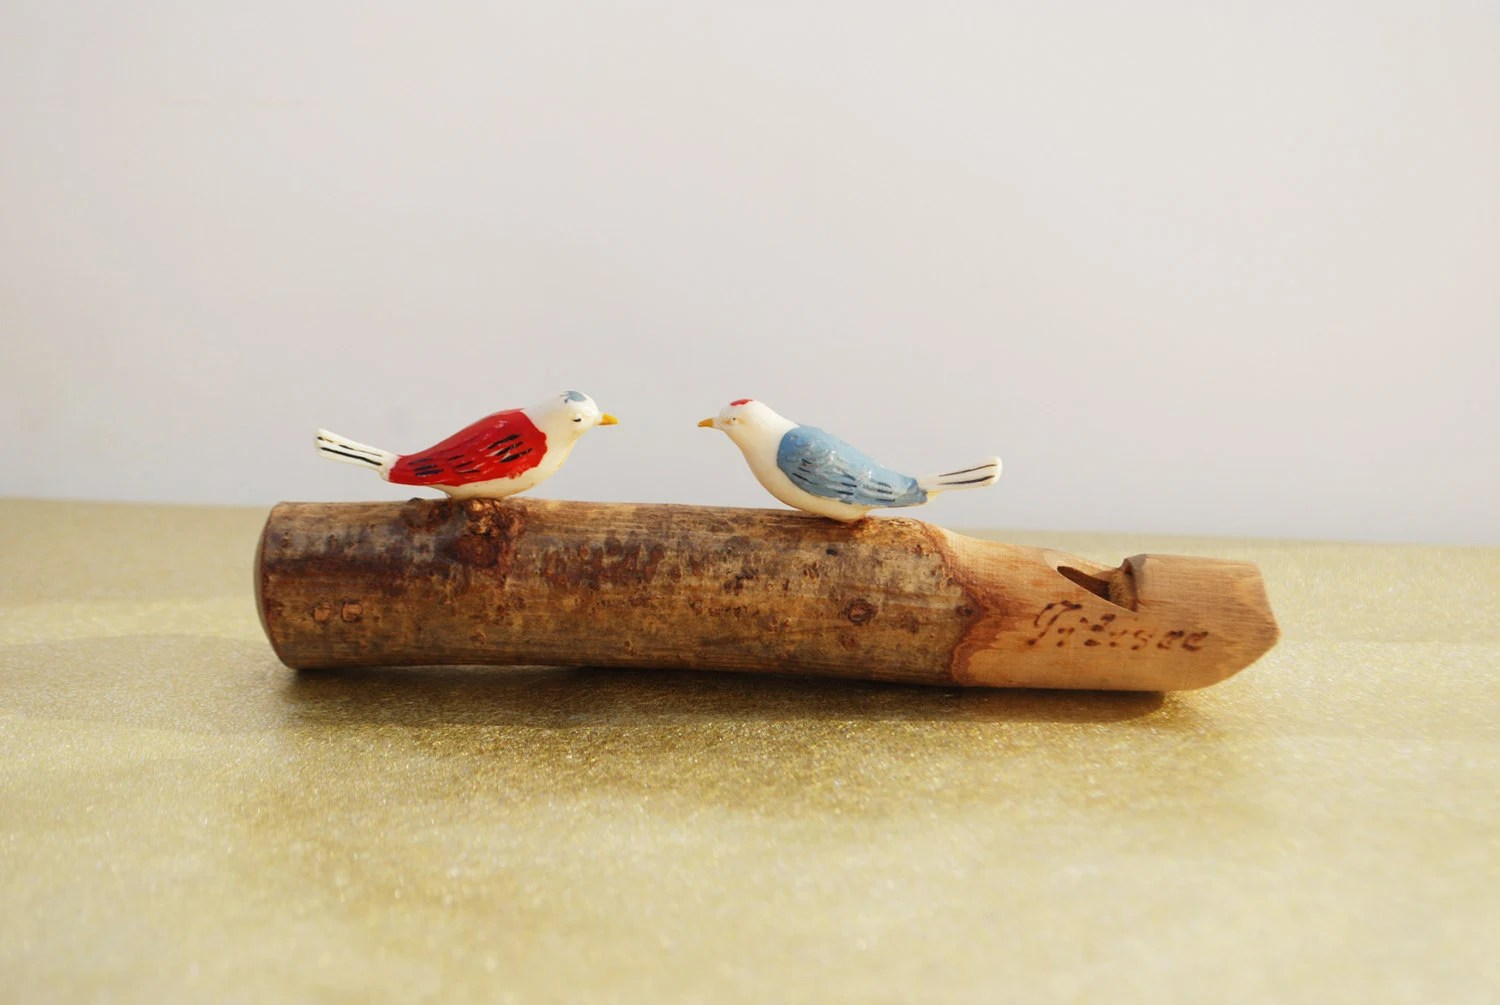 Vintage Wooden Bird Whistle - Wood Whistle, Vintage Children's Toy - copperseal